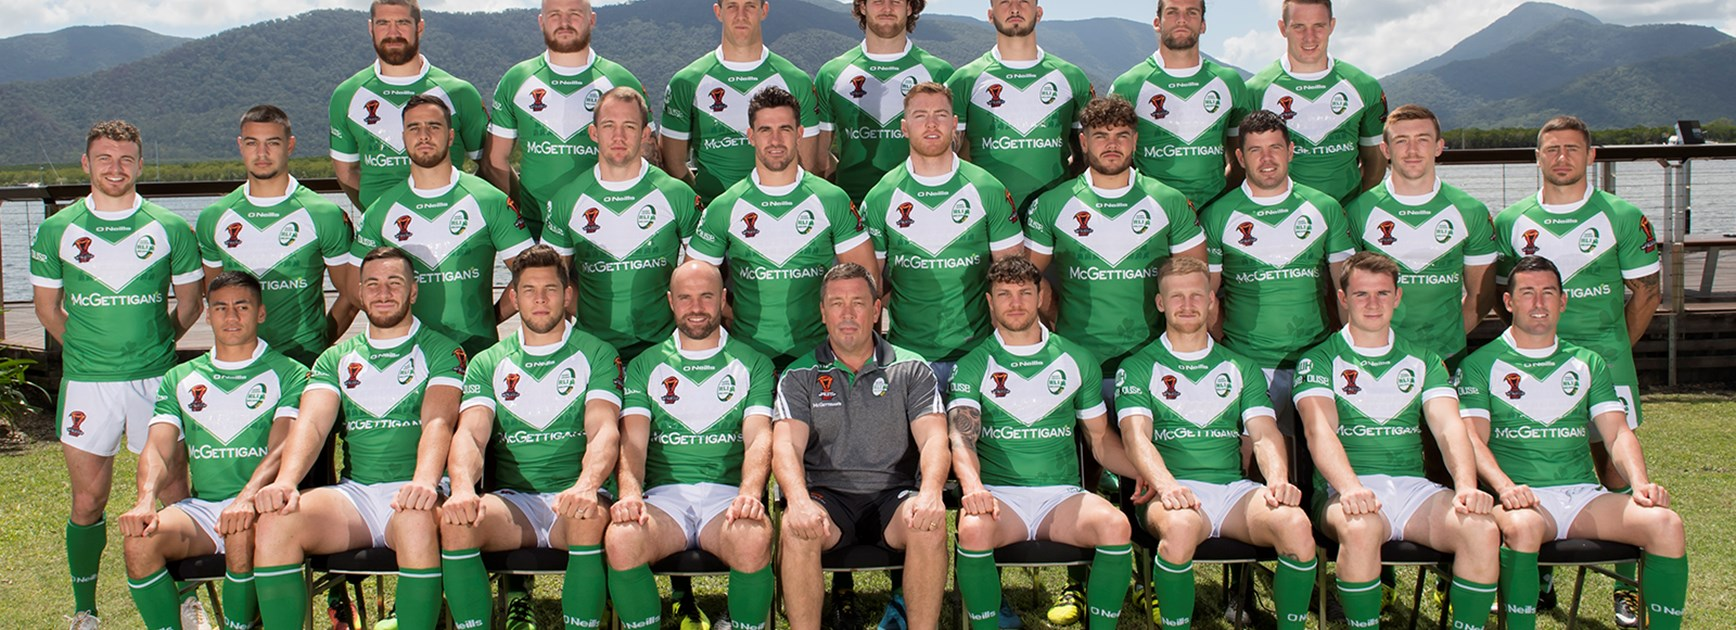 Ireland on path to growing rugby league